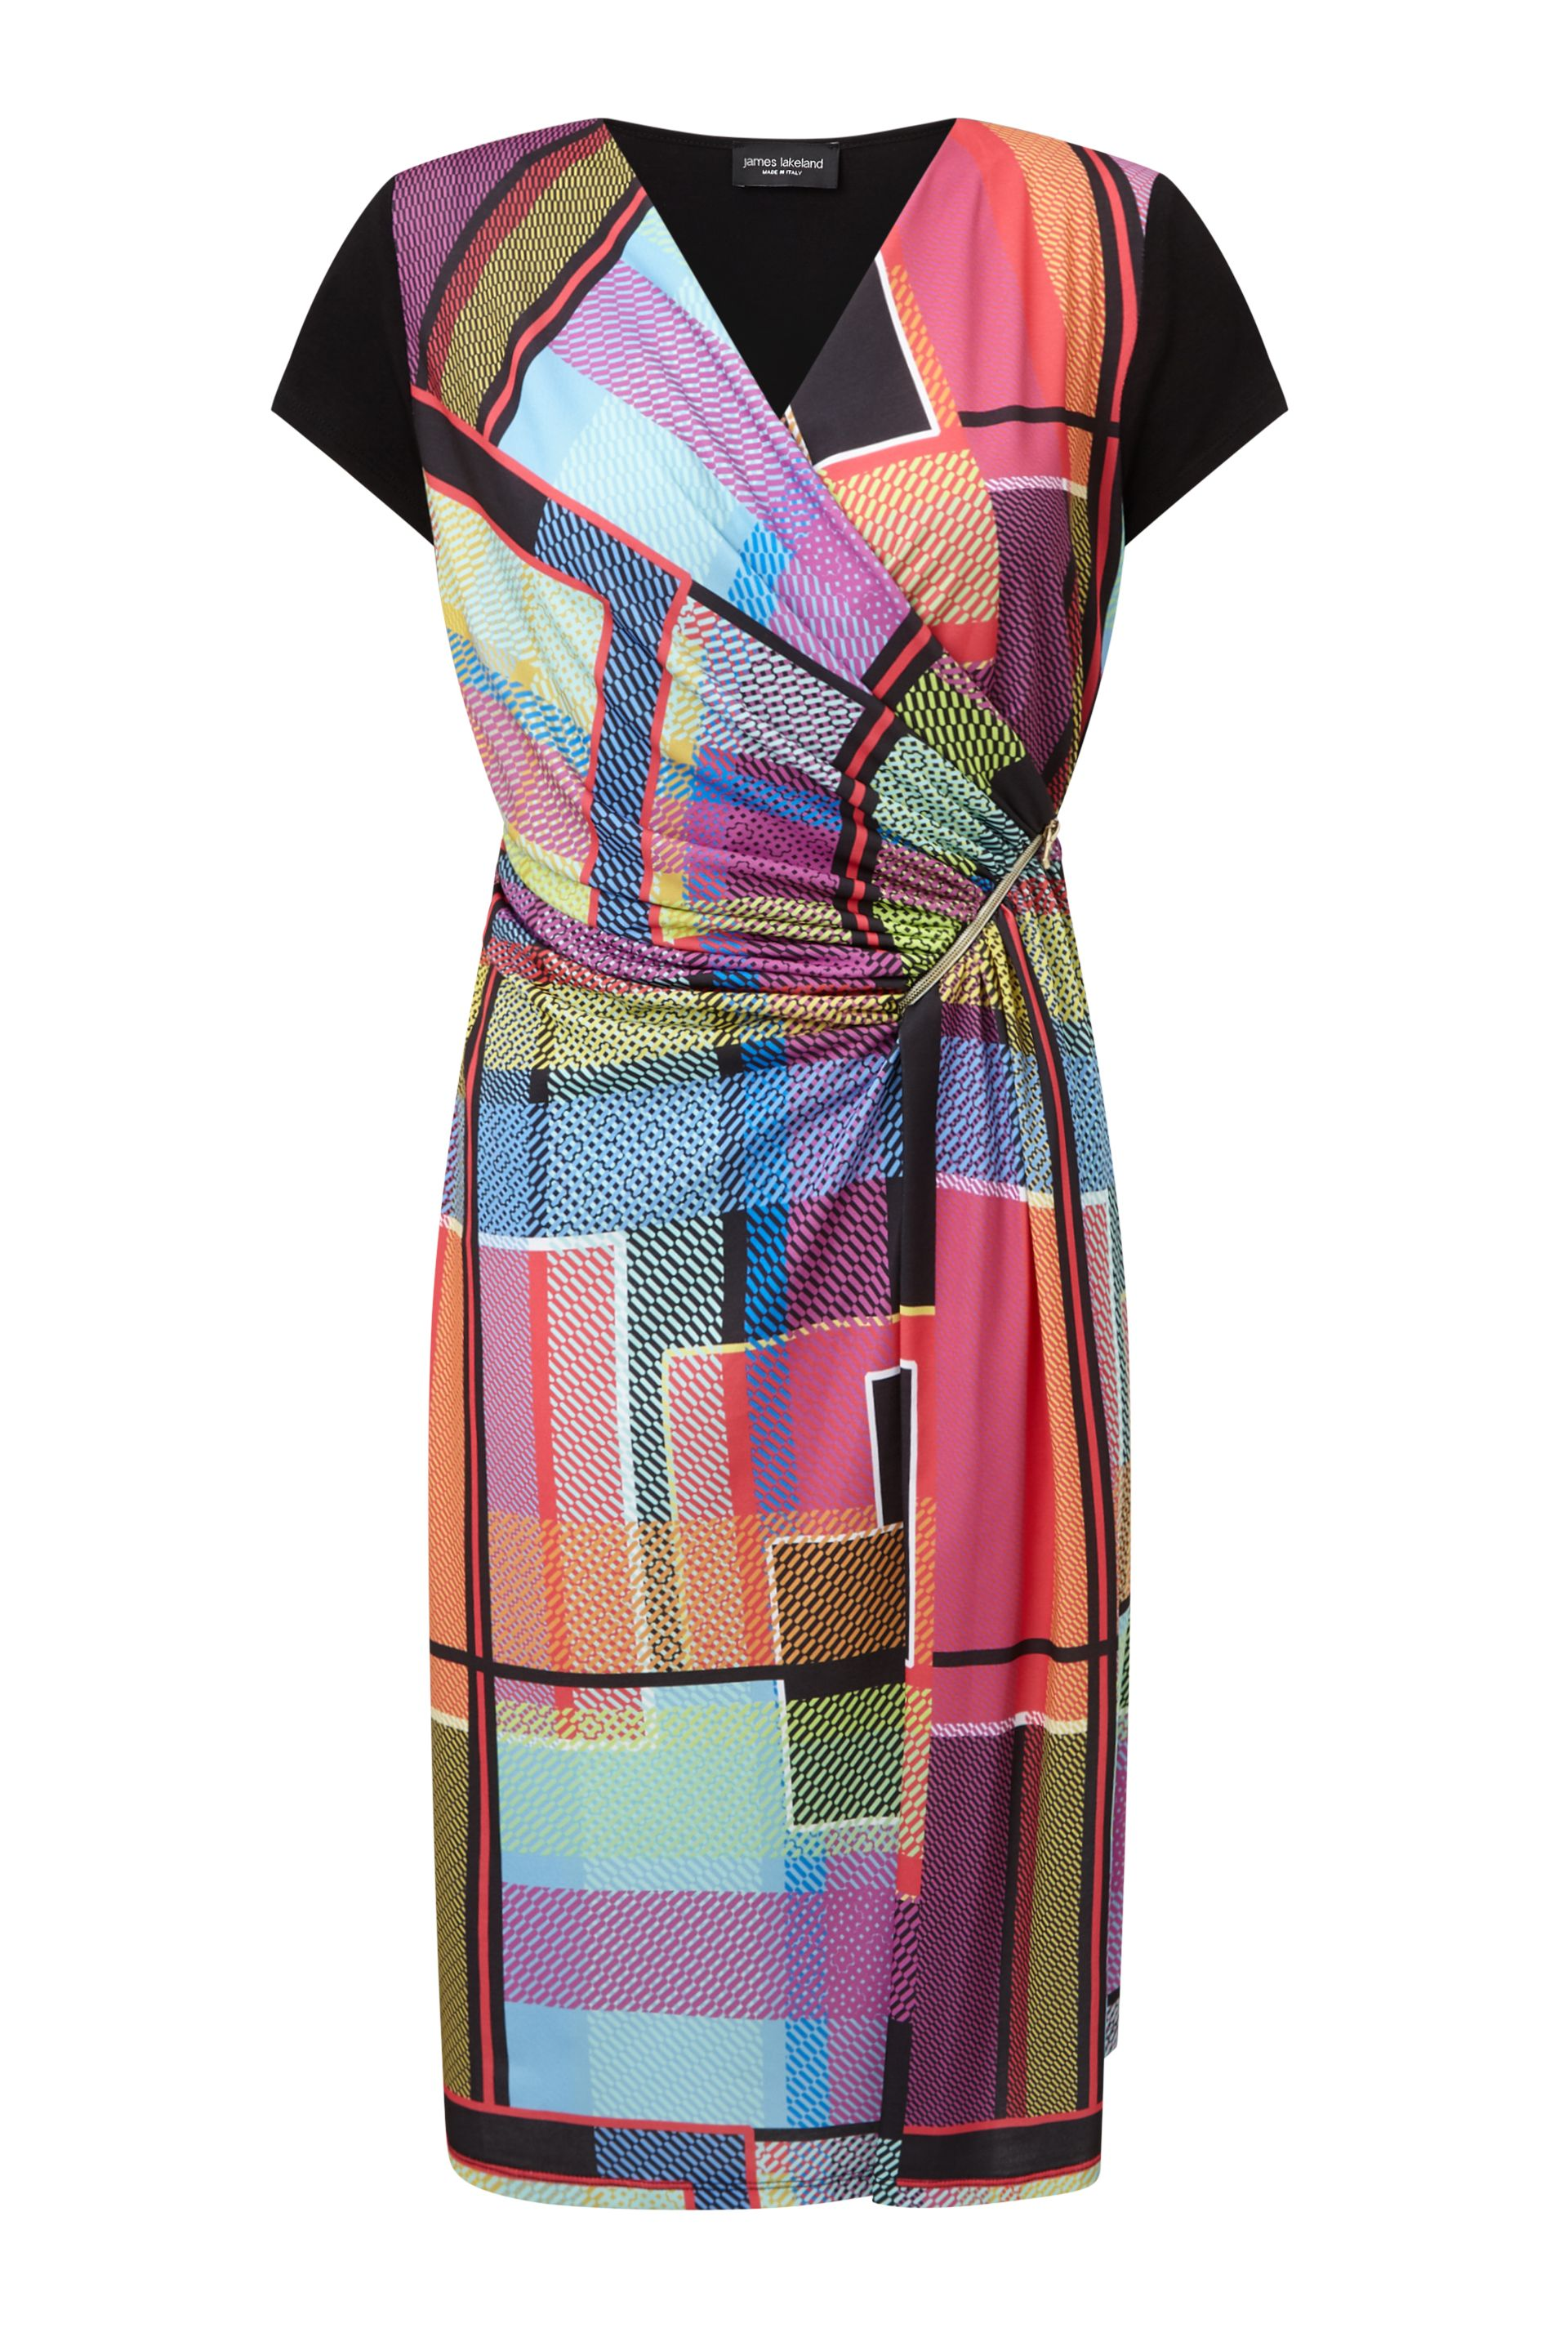 James Lakeland Graphic Print Zip Dress, Multi-Coloured